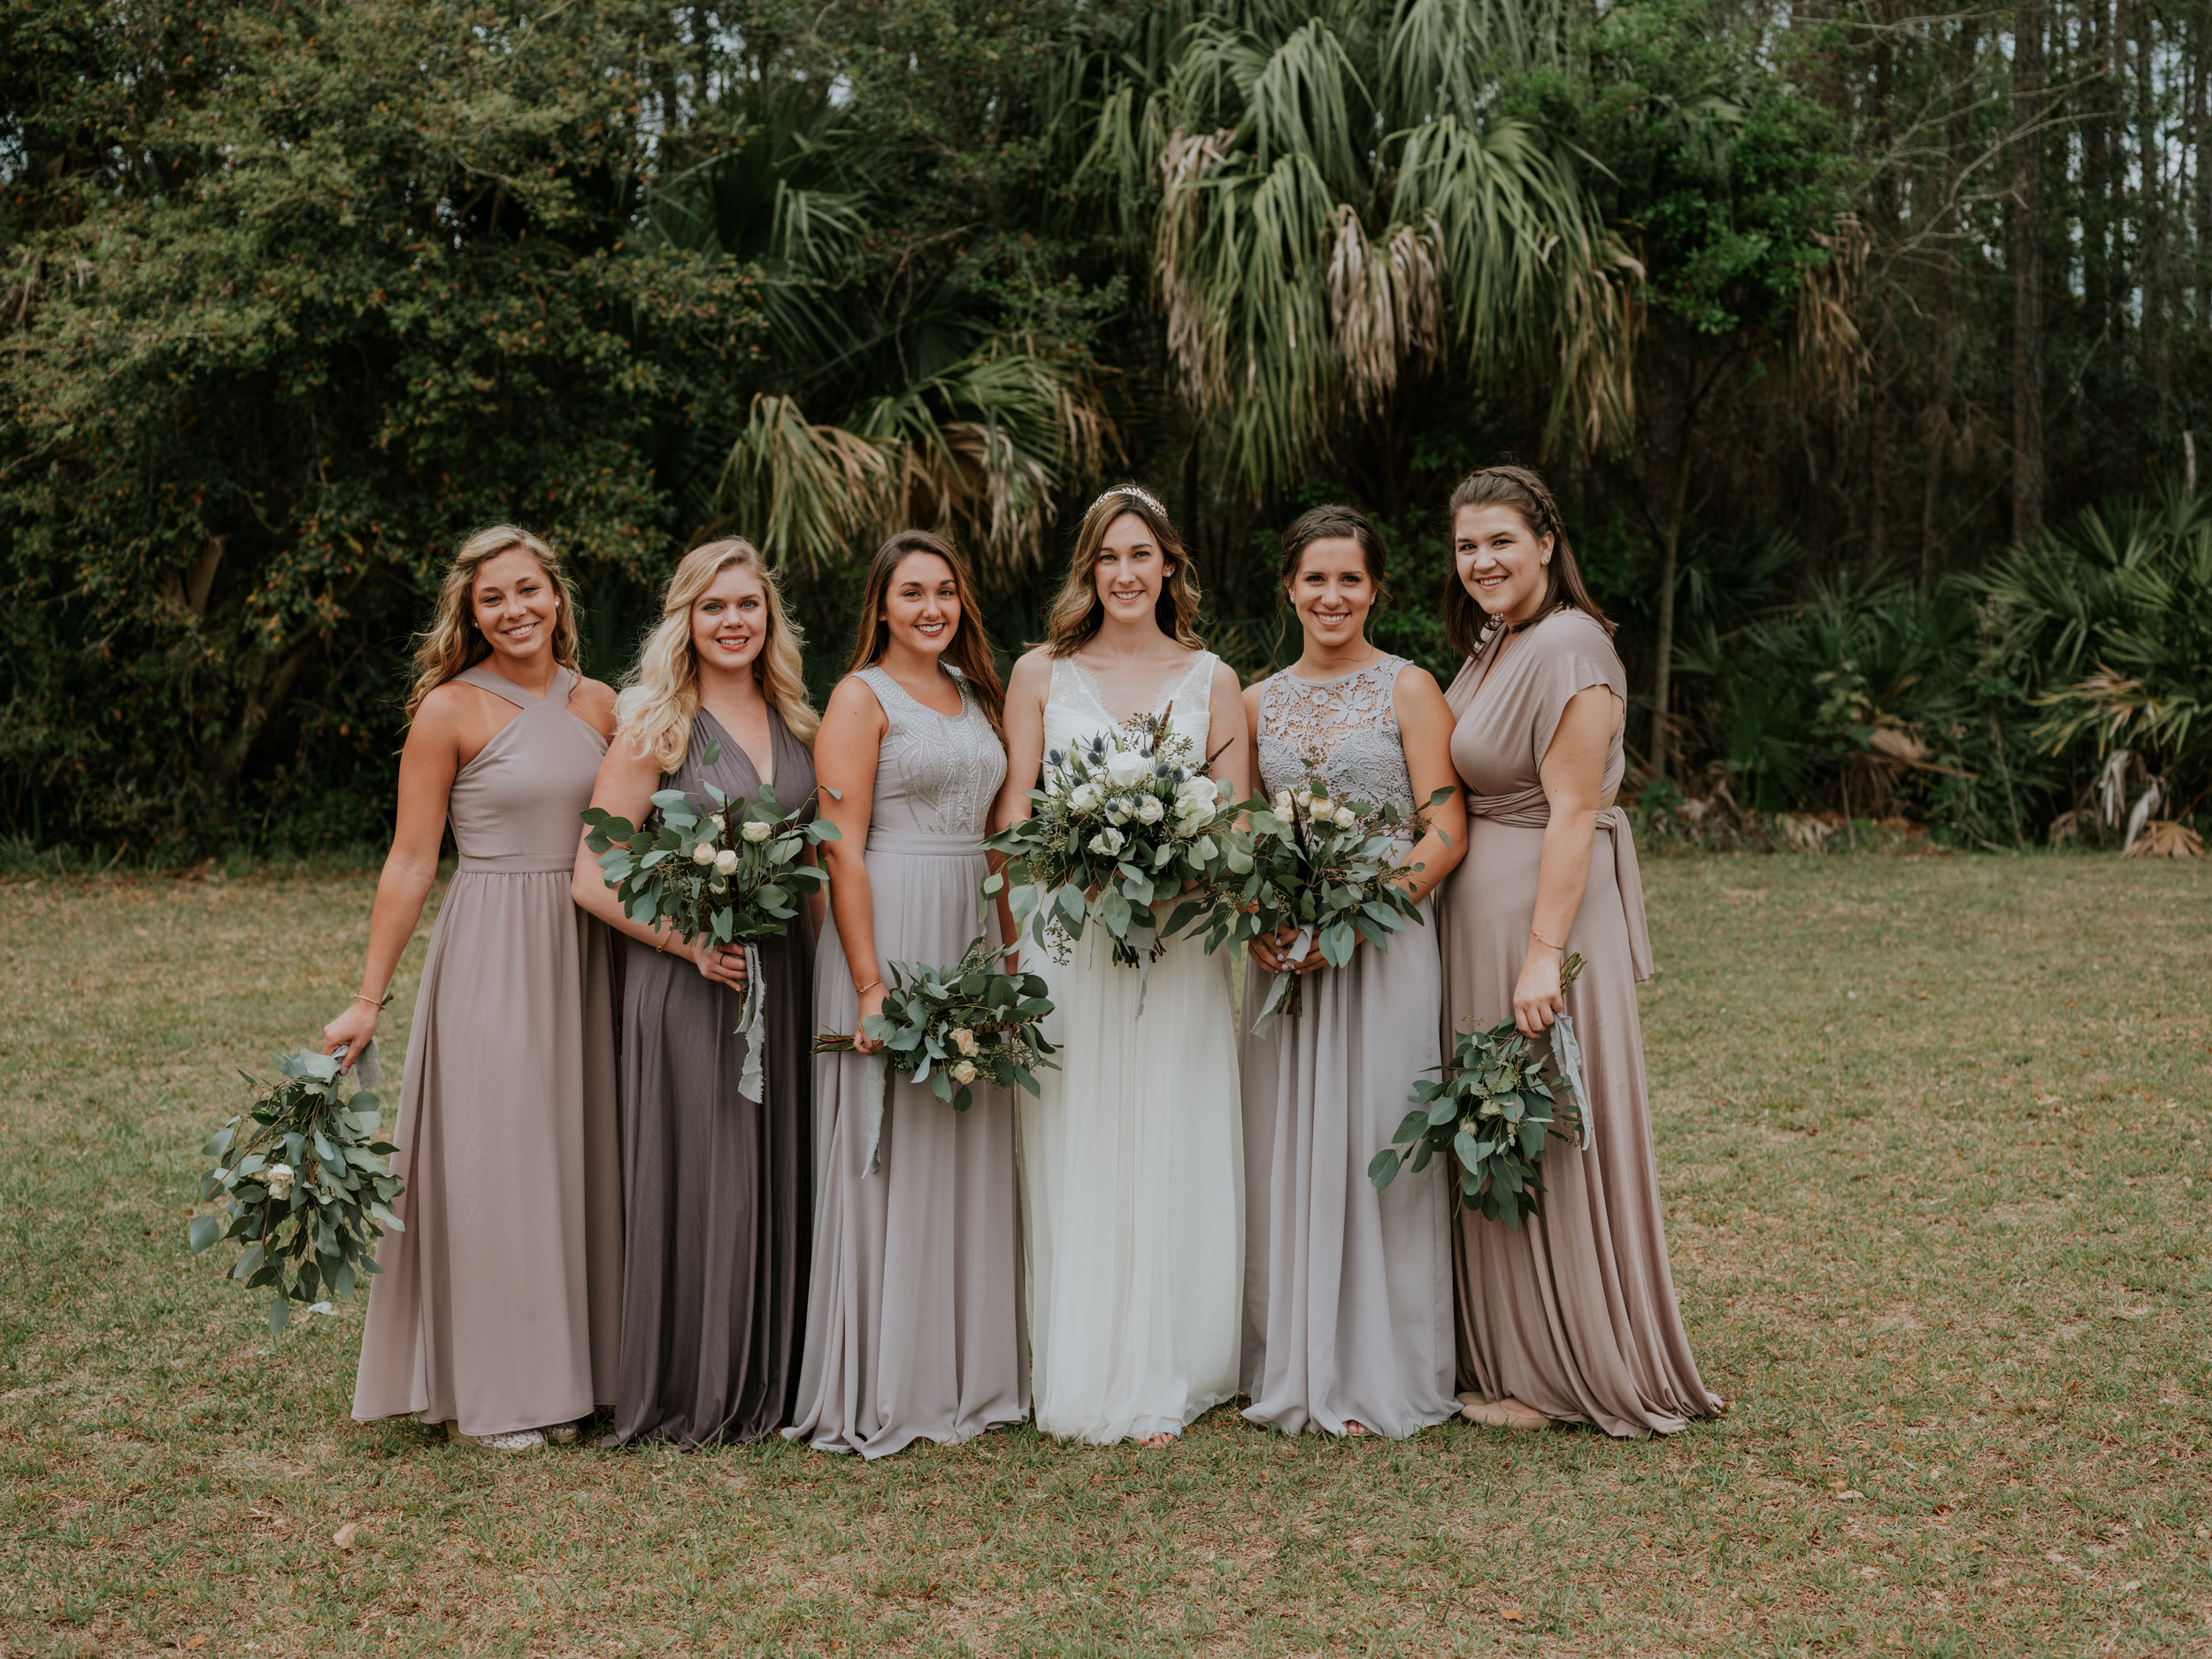 Mismatched Dresses + Colors - These are all different dresses from Lulu's varying in fabric, style, and color! As you can see, given the fluidity of the florals and the overall neutral tones, they all complement each other in a lovely way.